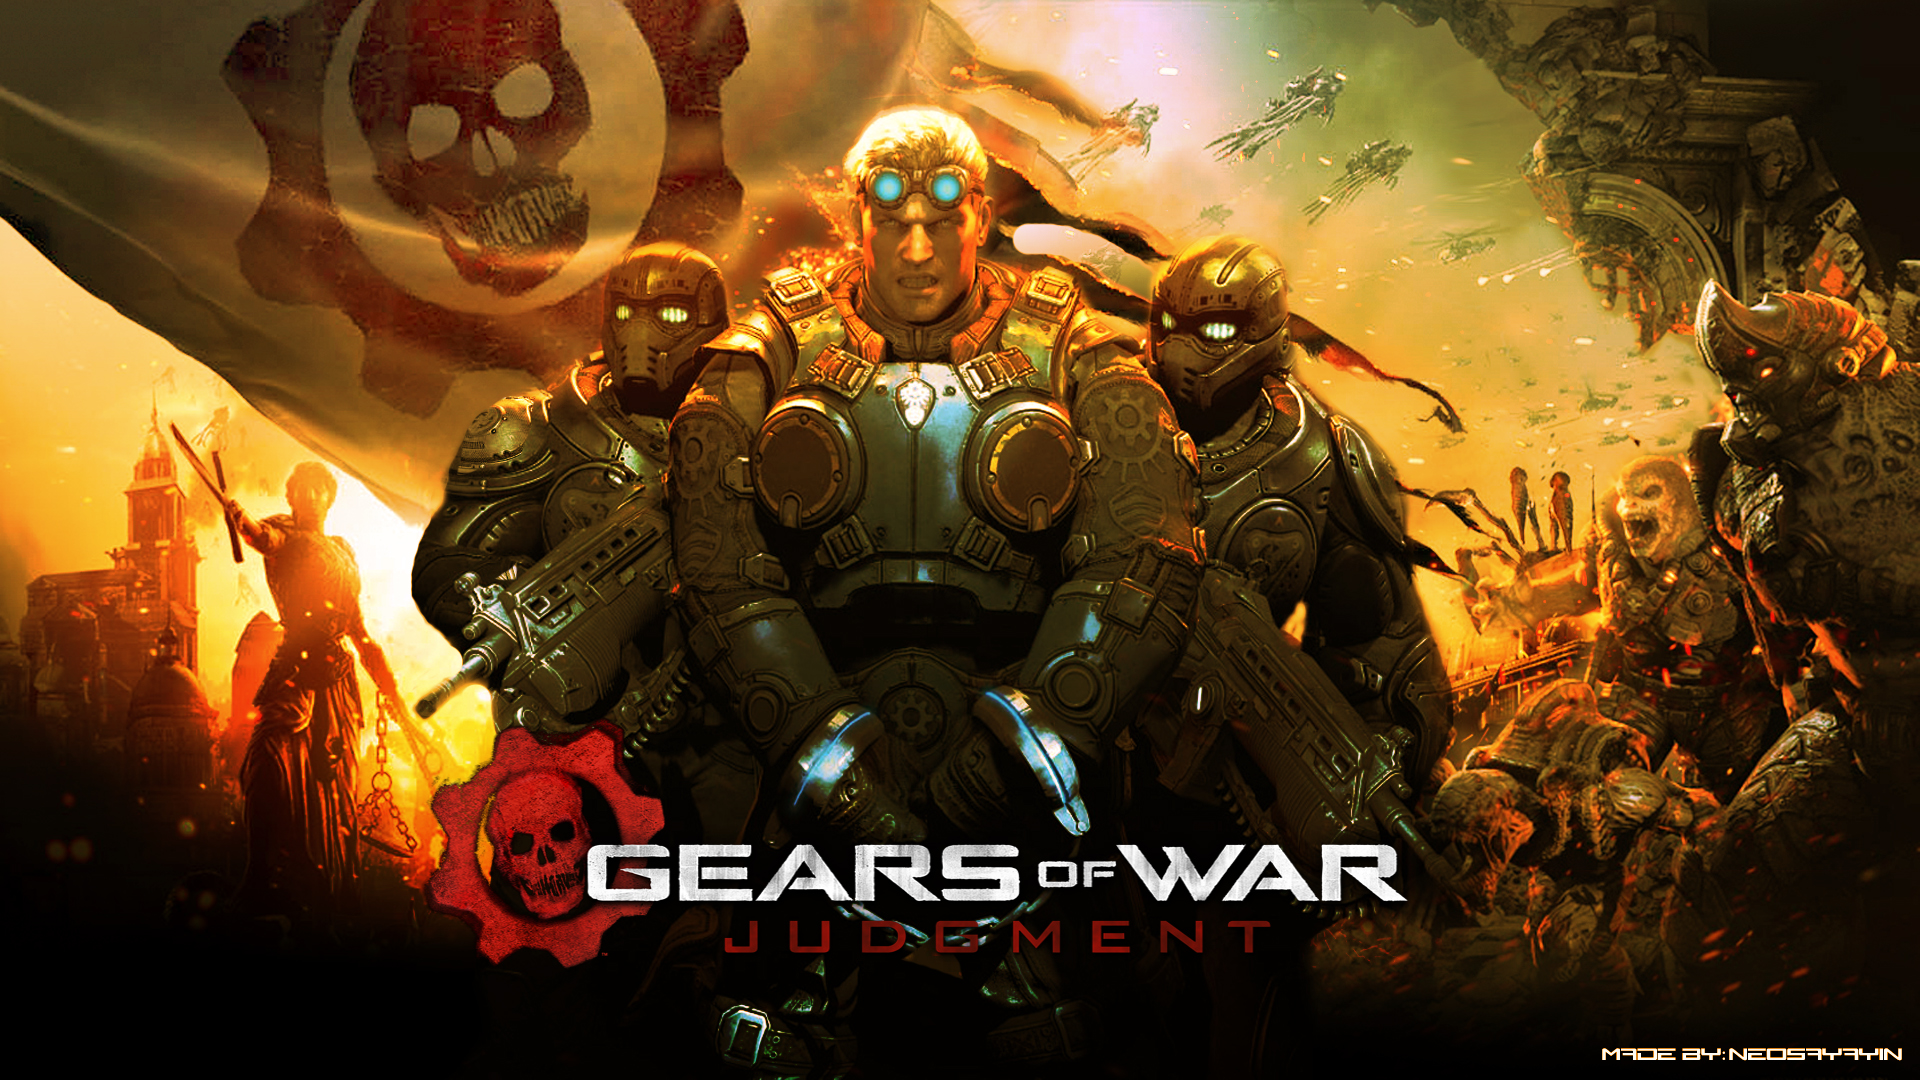 Gears of War Judgment Wallpaper HD Page 1 1920x1080